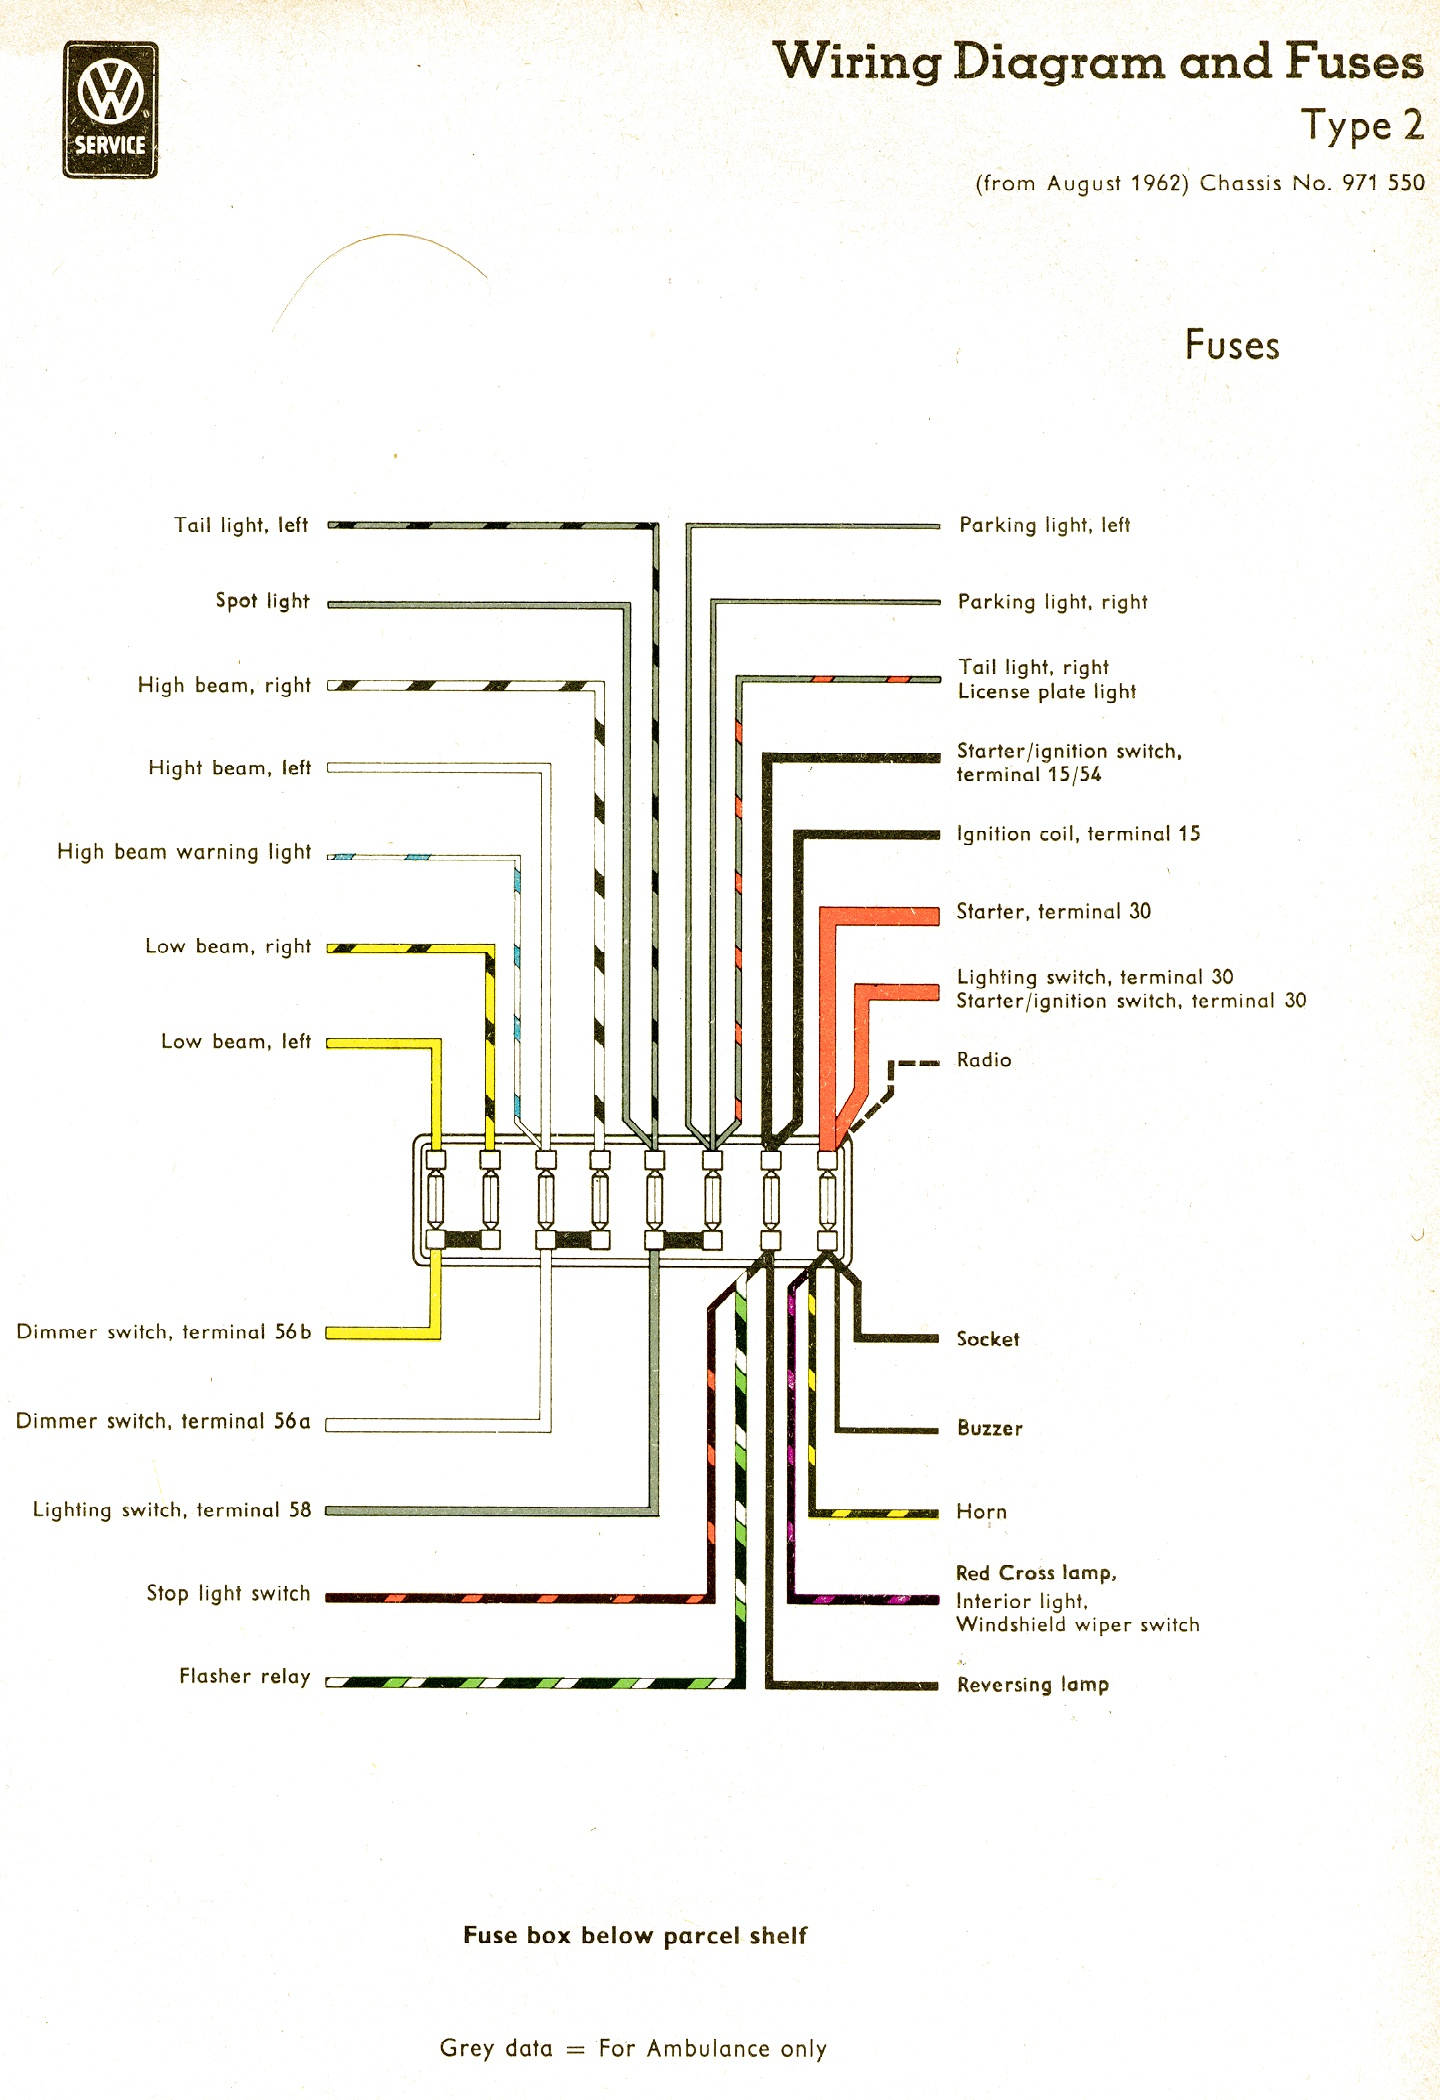 bus 62 fuse vw wiring diagrams 1973 vw beetle fuse box diagram at crackthecode.co